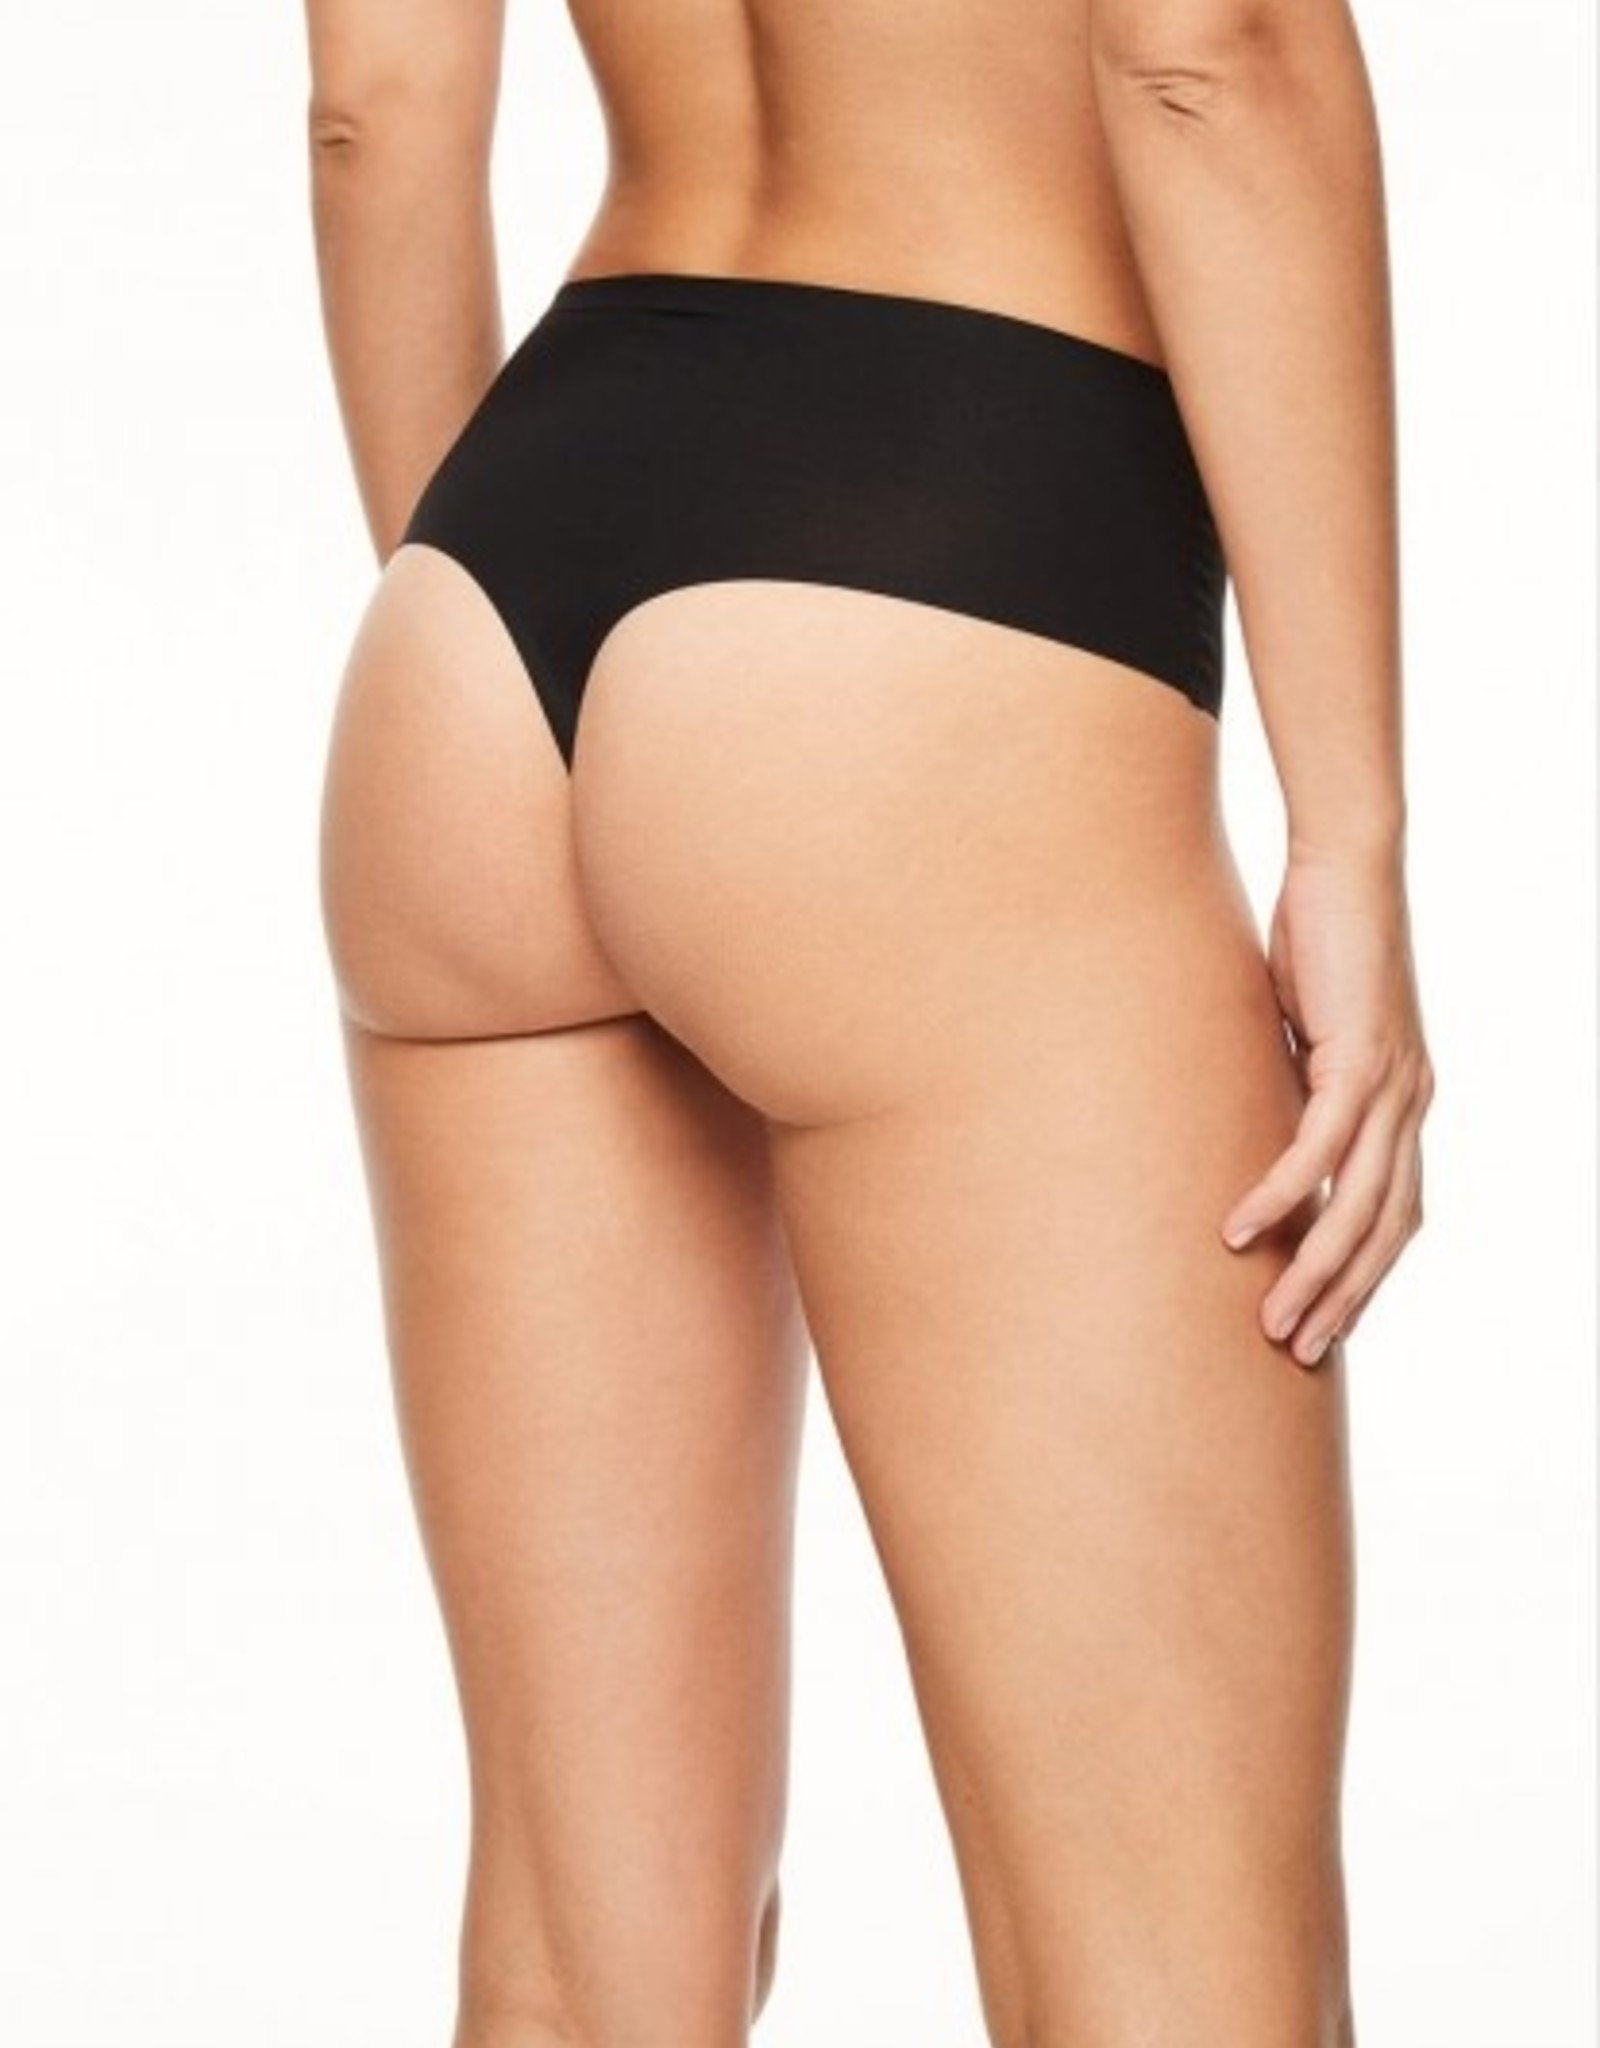 Chantelle Soft Stretch: High Waist Thong 1069